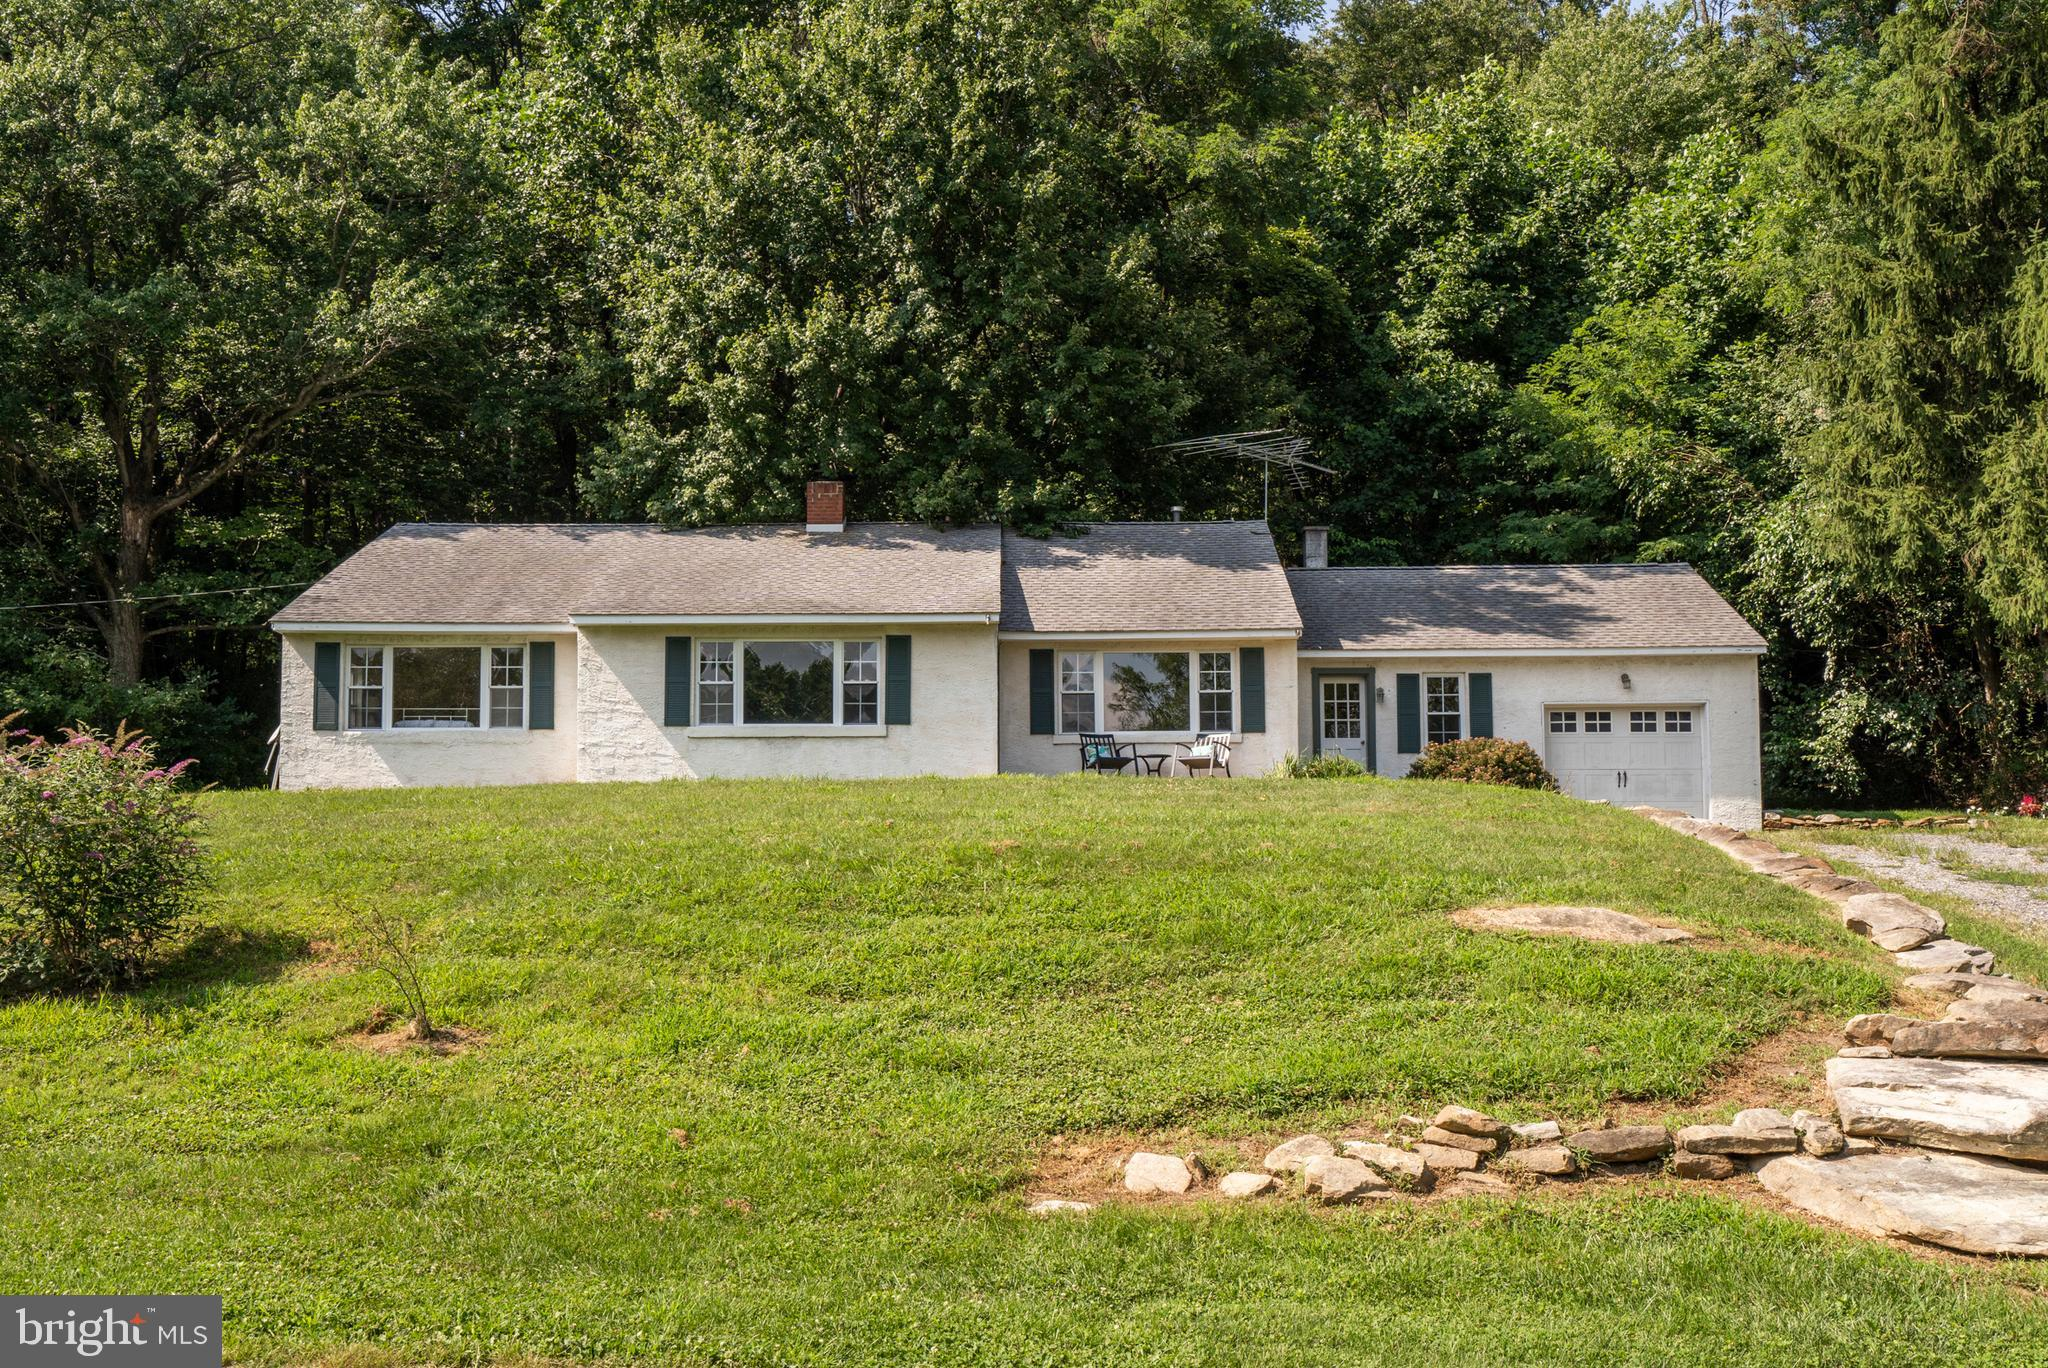 2997 UPPER VALLEY ROAD, PARKESBURG, PA 19365